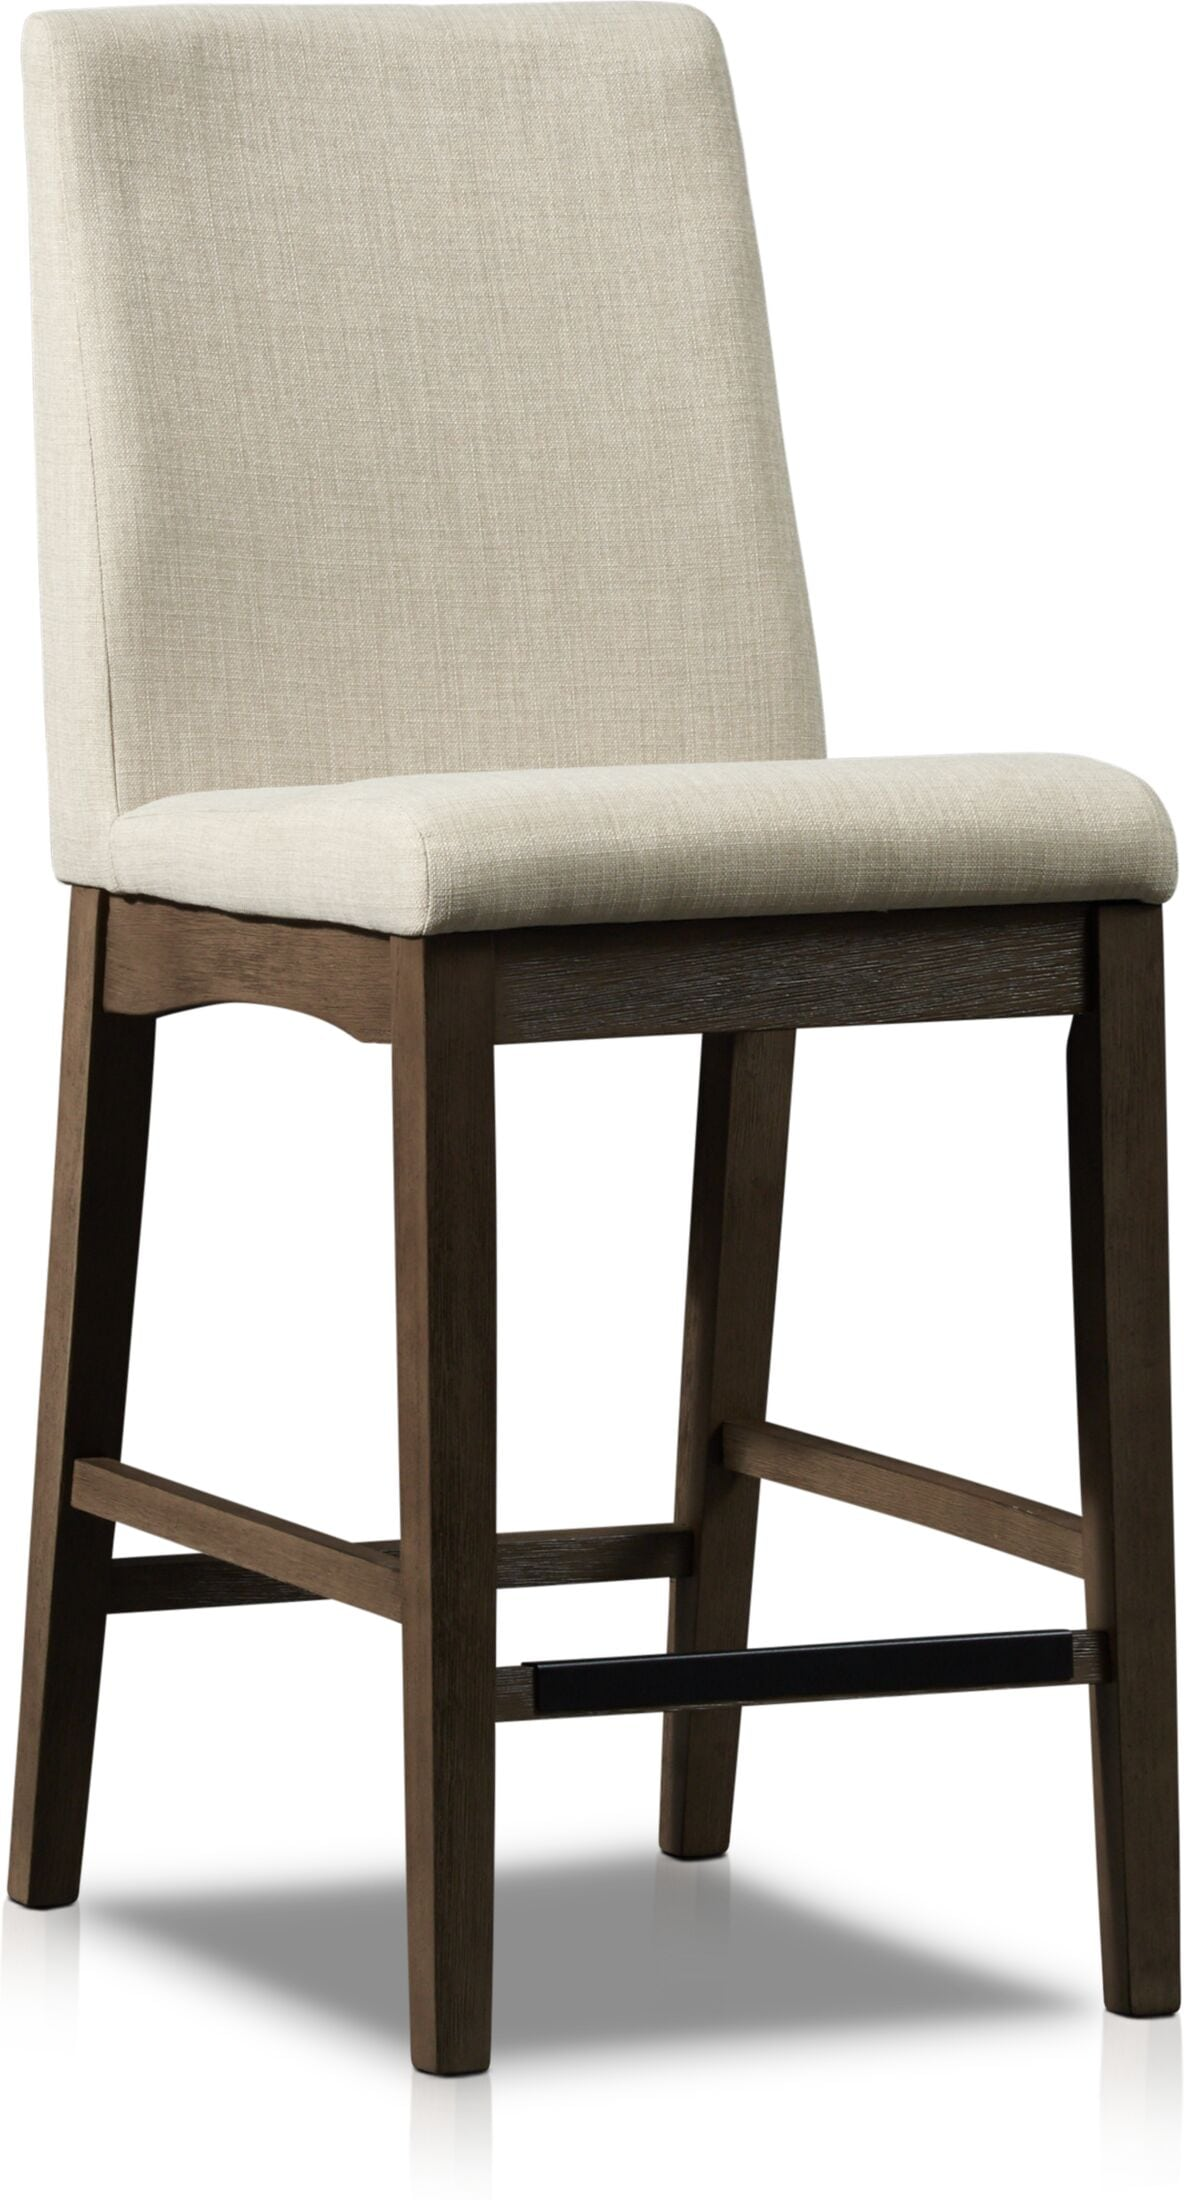 Dining Room Furniture - Gemini Counter-Height Stool